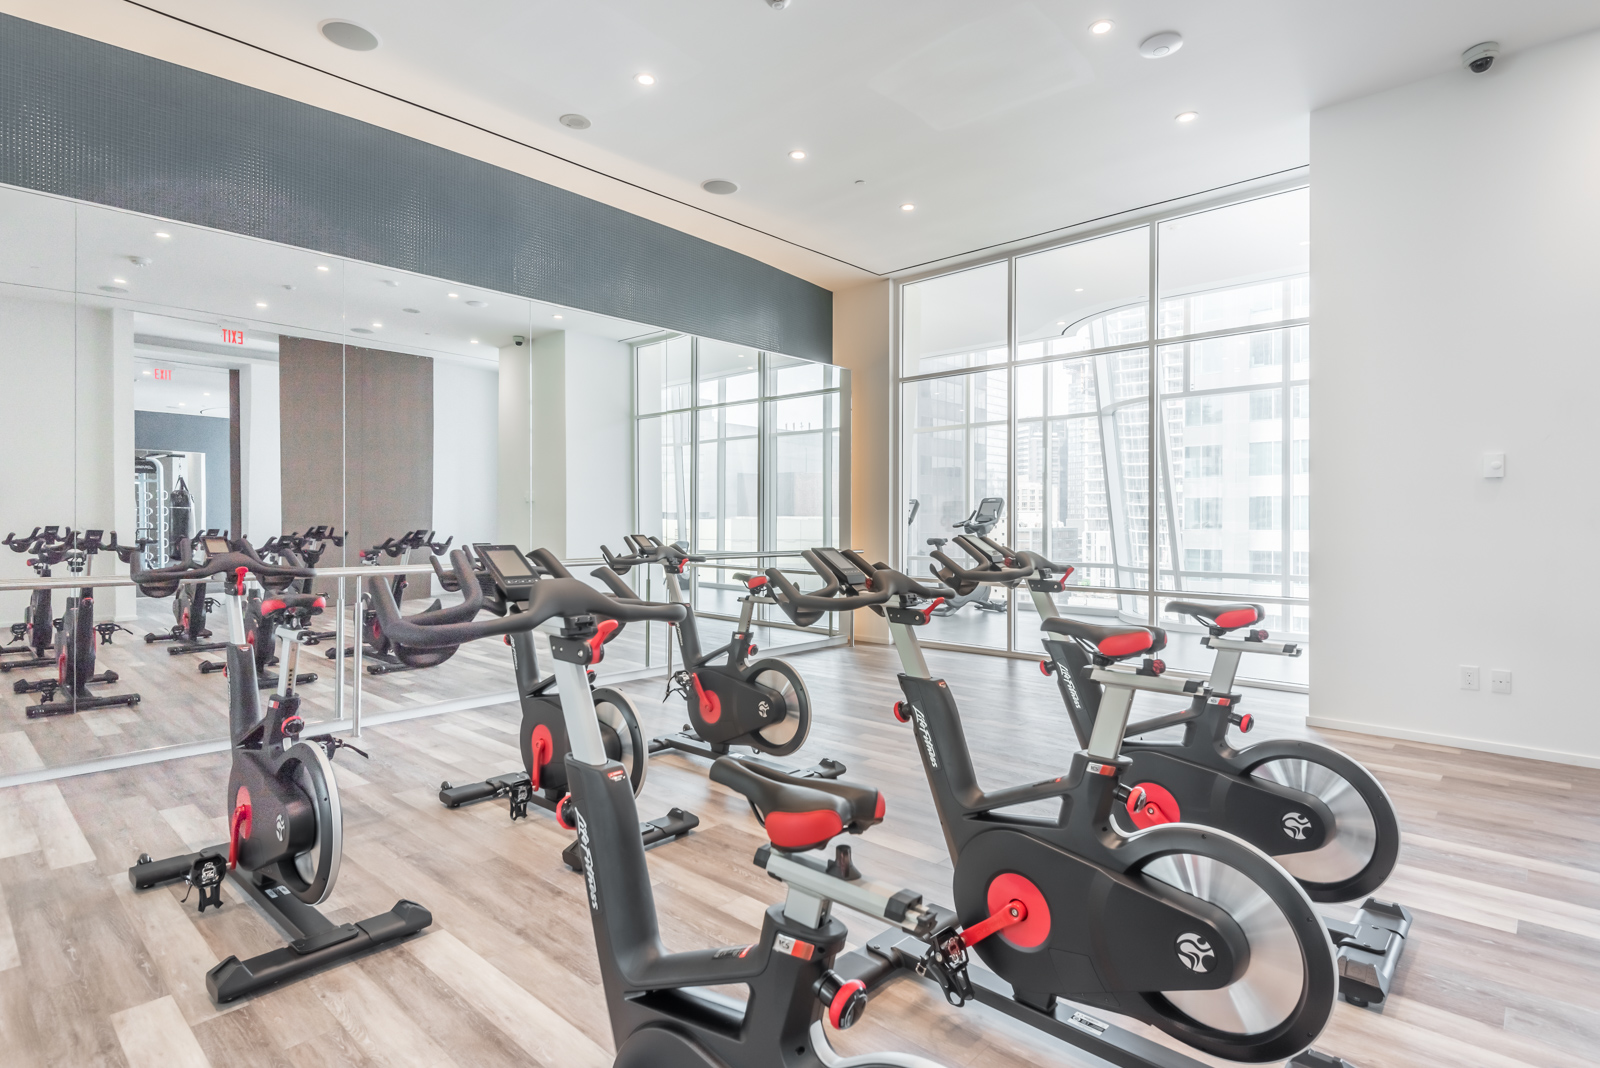 Spin studio and cycles at One Bloor Condos in Toronto.